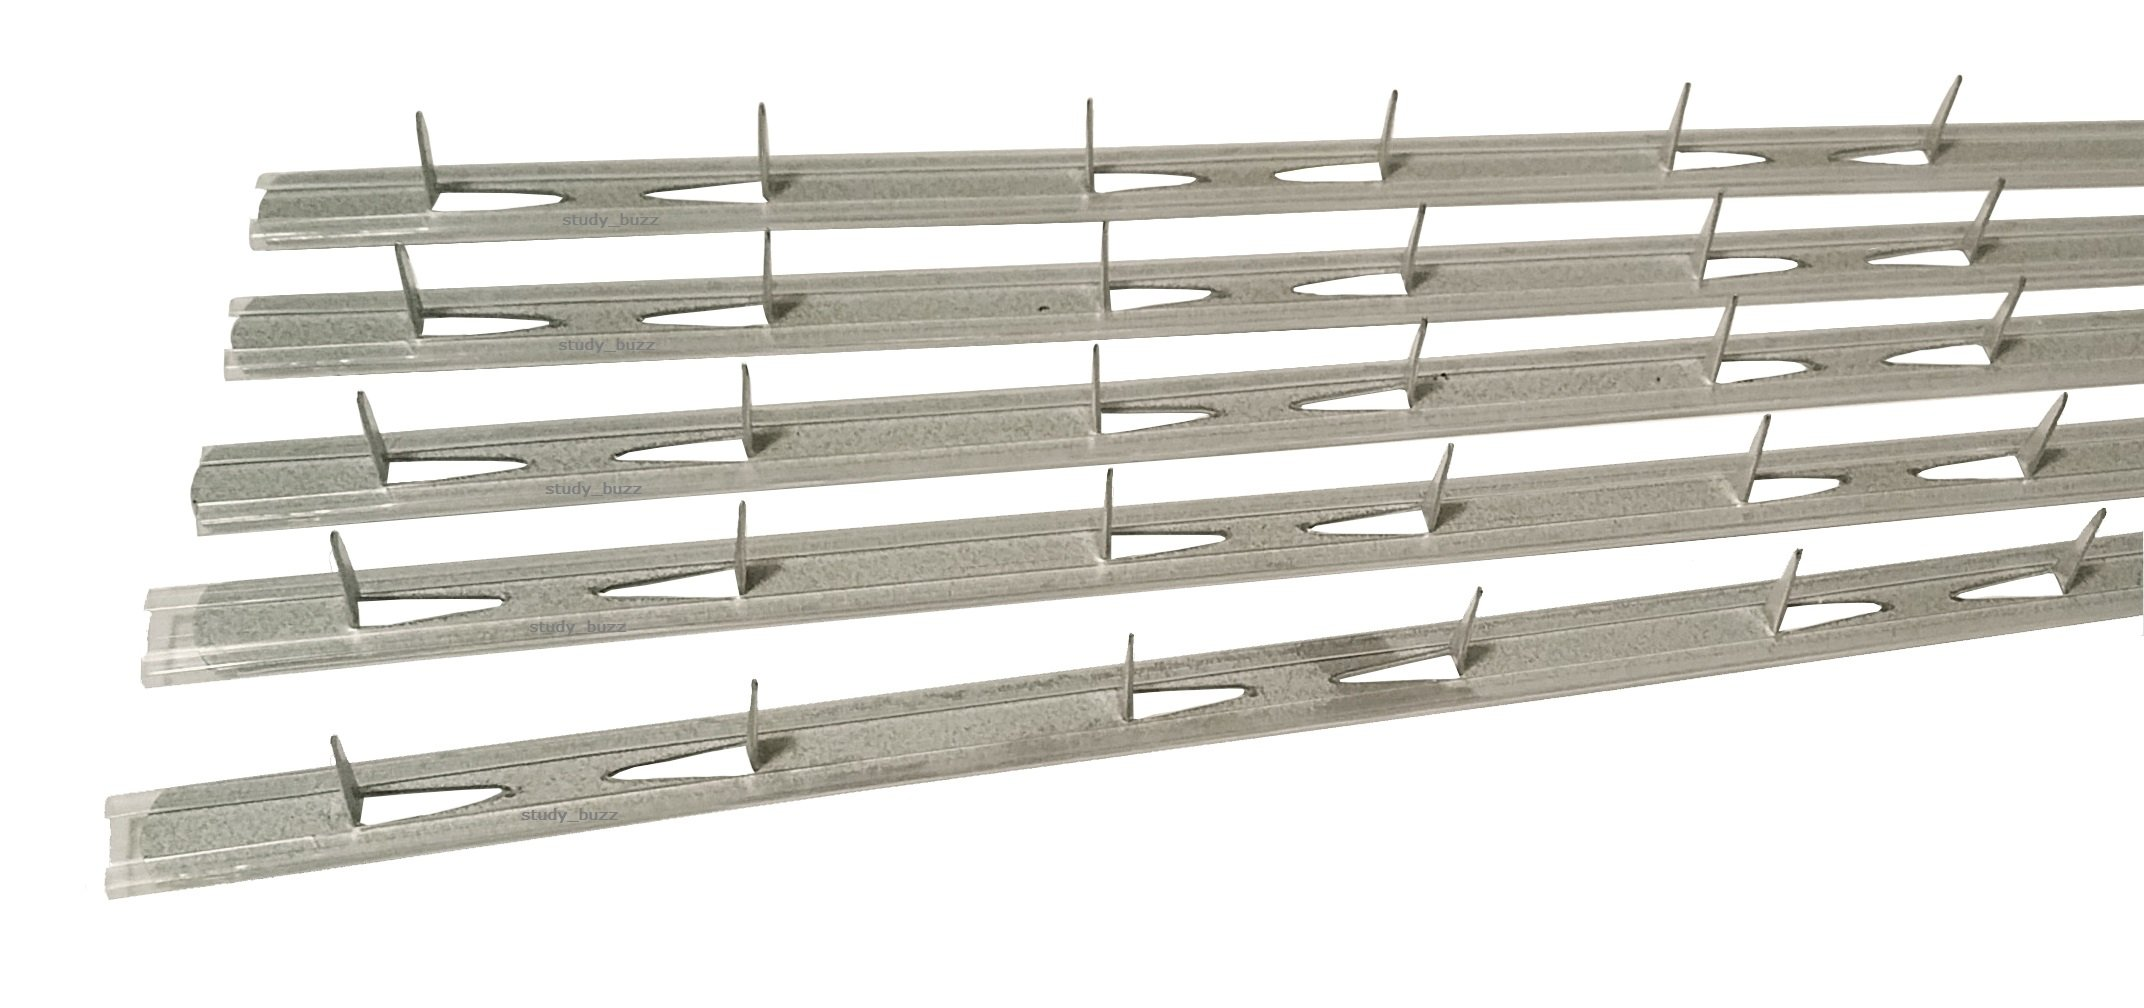 27'' Upholstery Insulated Tack Strip - Box of 100 Strips